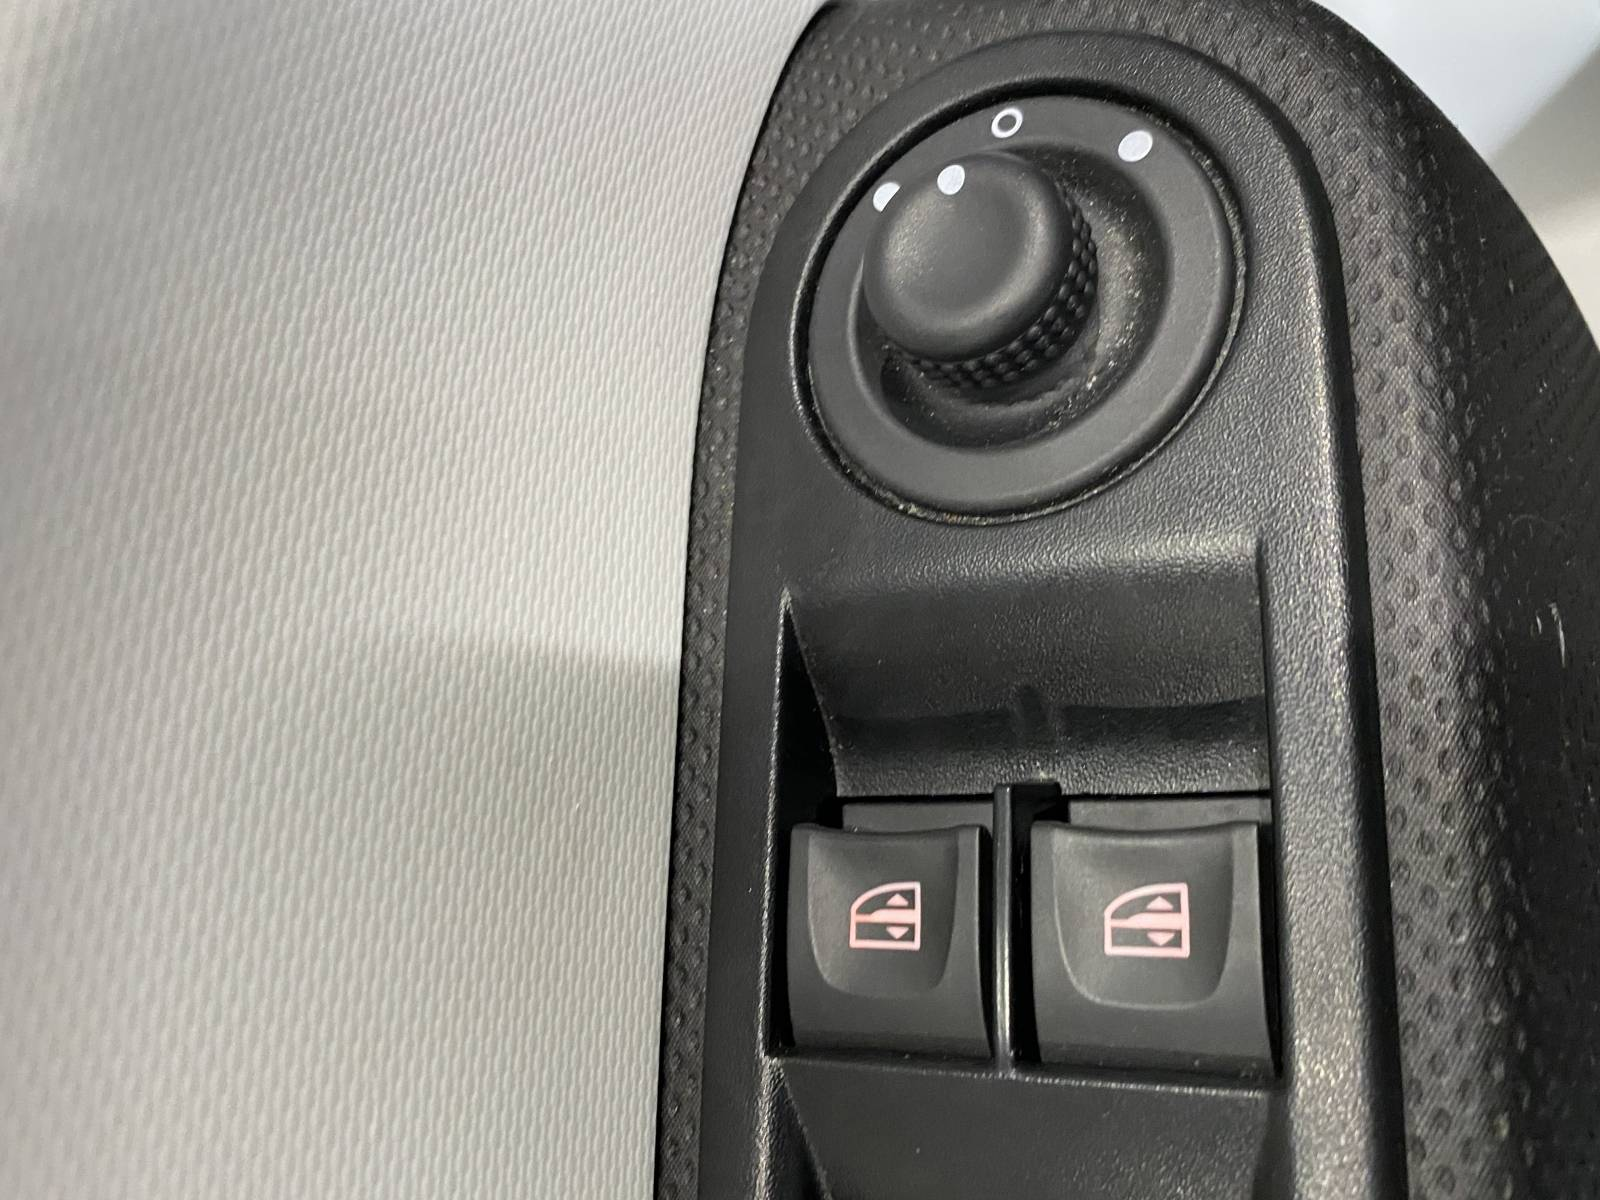 RENAULT Twingo III 0.9 TCe 90 Energy E6C - véhicule d'occasion - Site Internet Faurie - Renault - Faurie Auto Limoges - 87000 - Limoges - 3